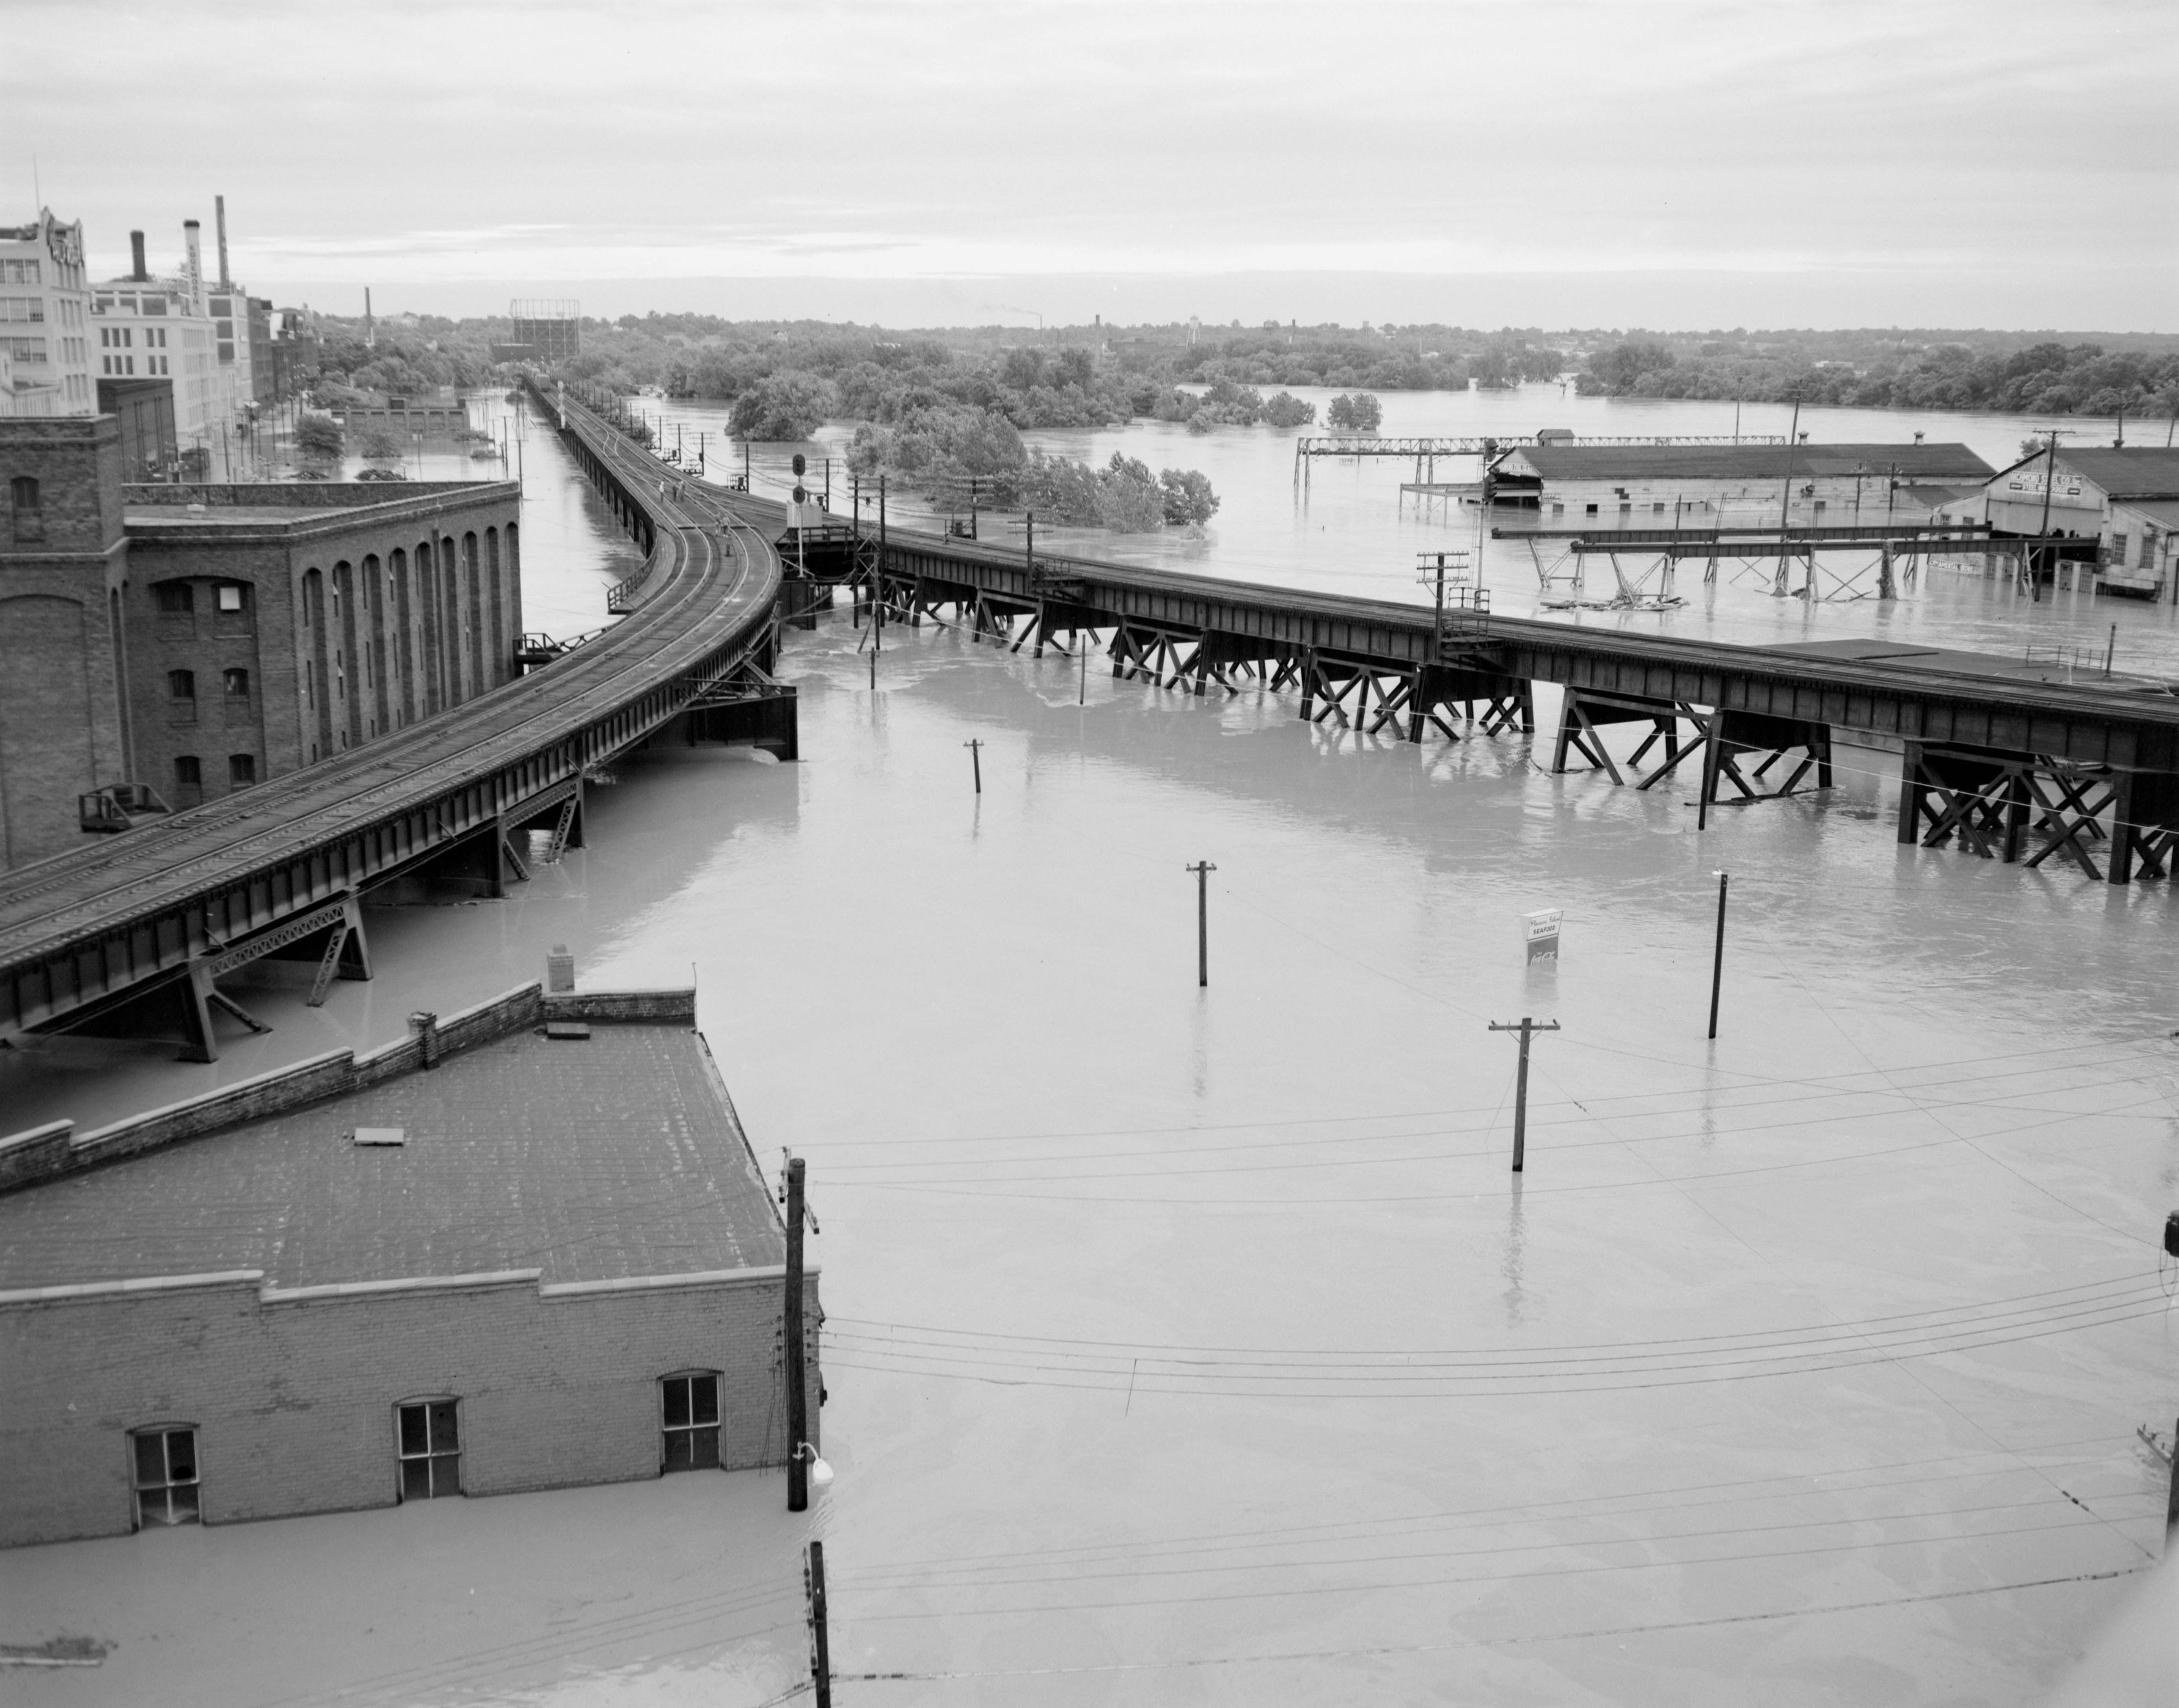 View of flooding in Richmond from the I 95 bridge 6 23